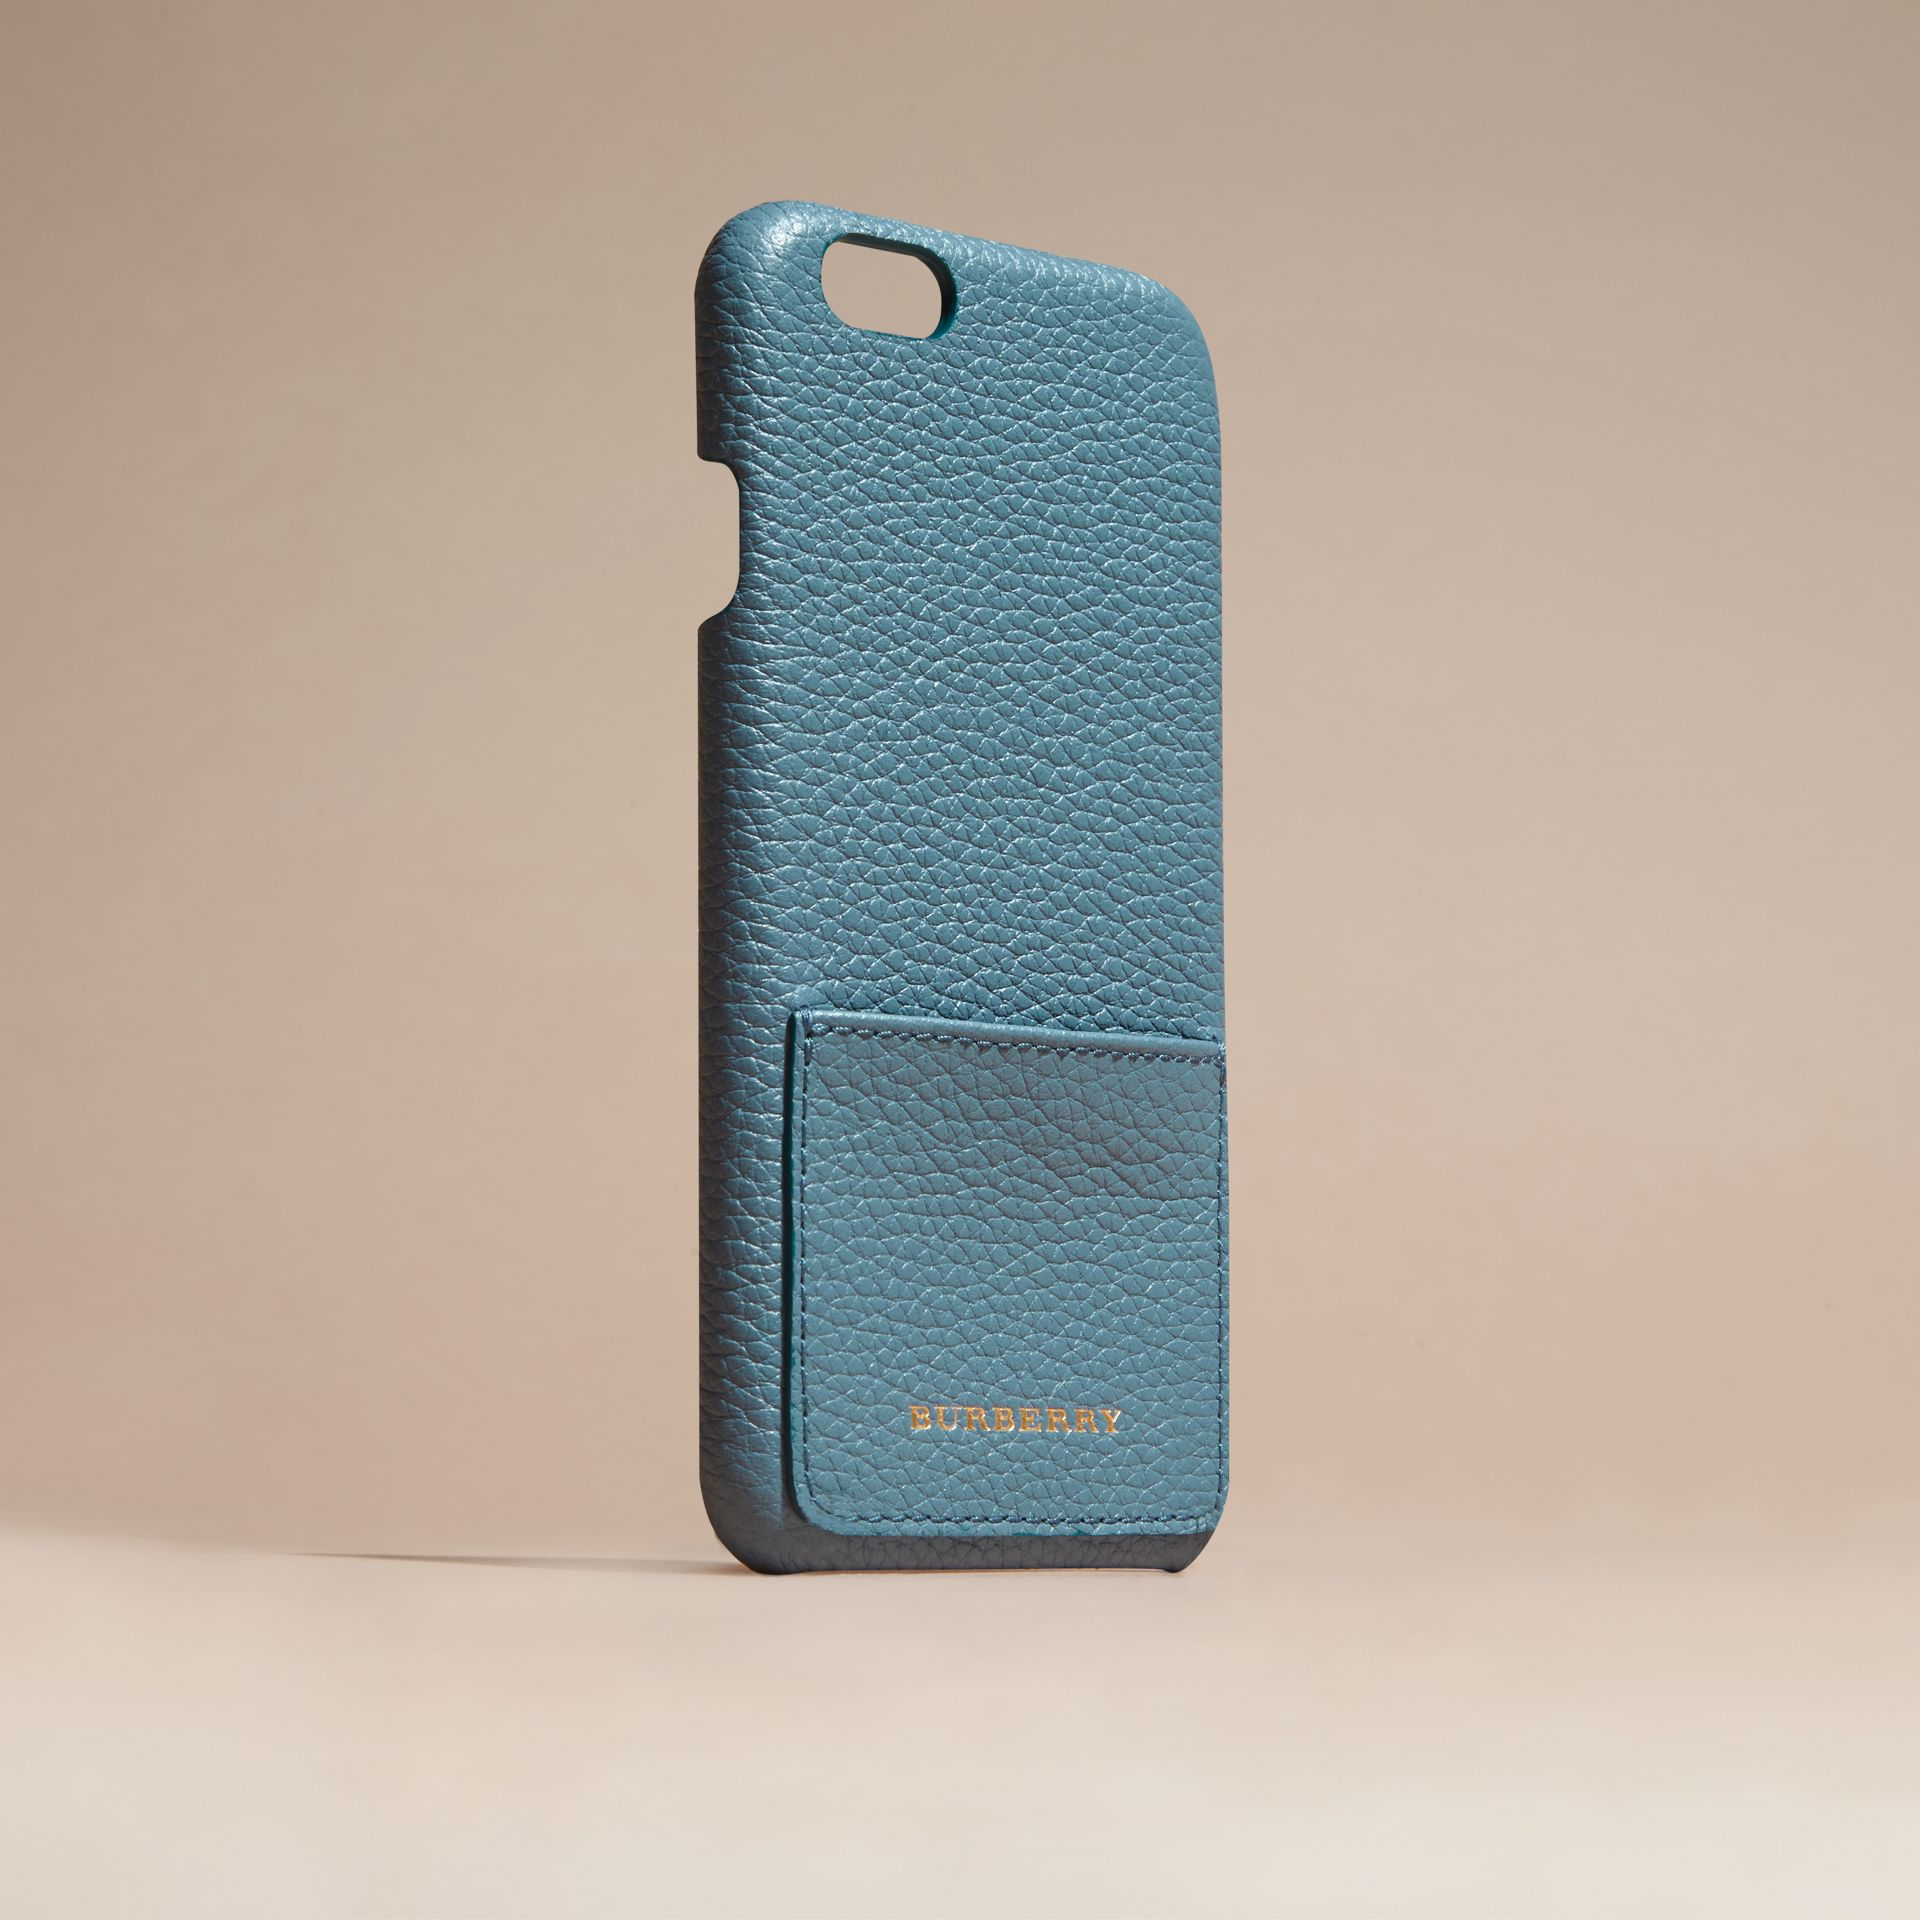 Grainy Leather iPhone 6 Case in Dusty Teal | Burberry - gallery image 3